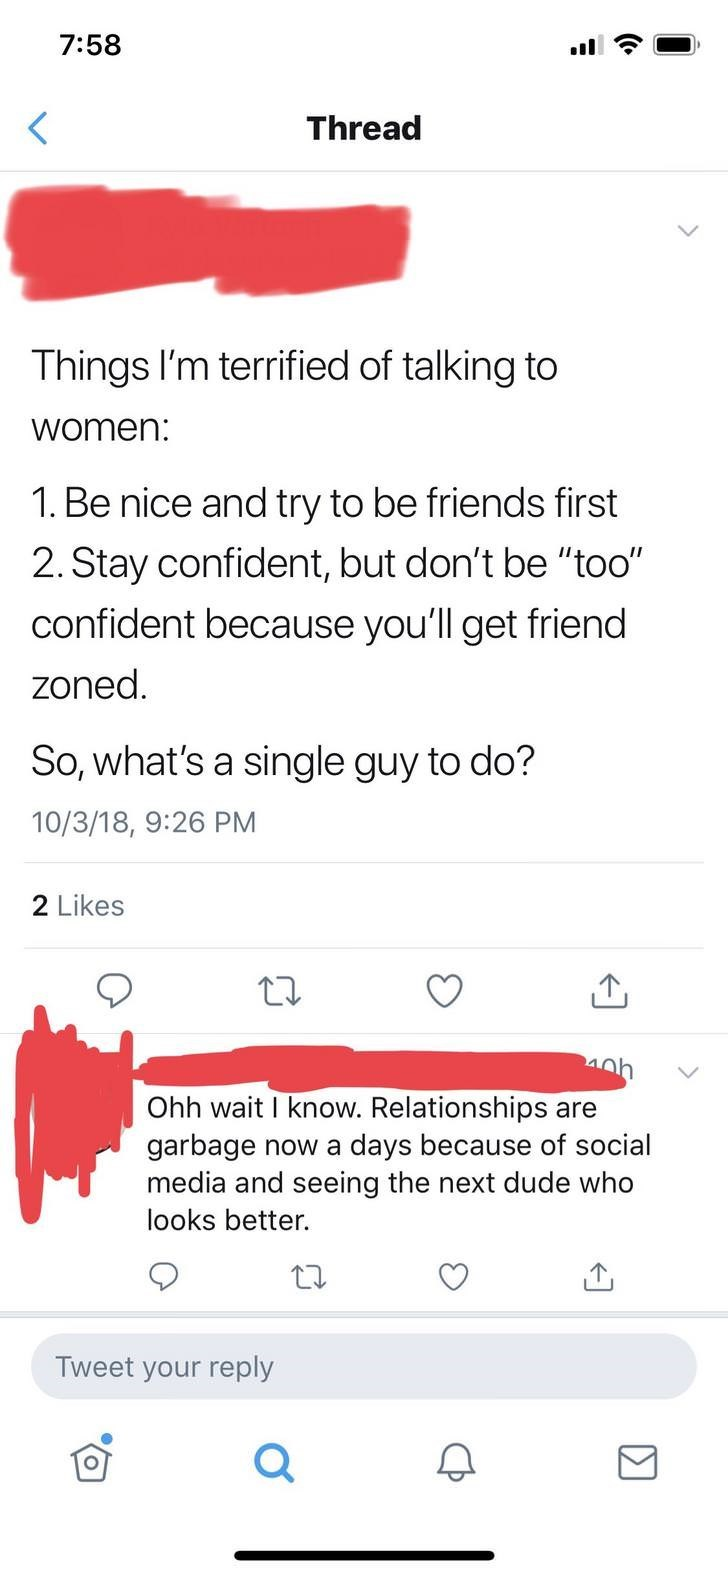 "Text - 7:58 Thread Things I'm terrified of talking to women: 1. Be nice and try to be friends first 2. Stay confident, but don't be ""too"" confident because you'll get friend zoned So, what's a single guy to do? 10/3/18, 9:26 PM Likes 4h Ohh wait I know. Relationships are garbage now a days because of social media and seeing the next dude who looks better. Tweet your reply"